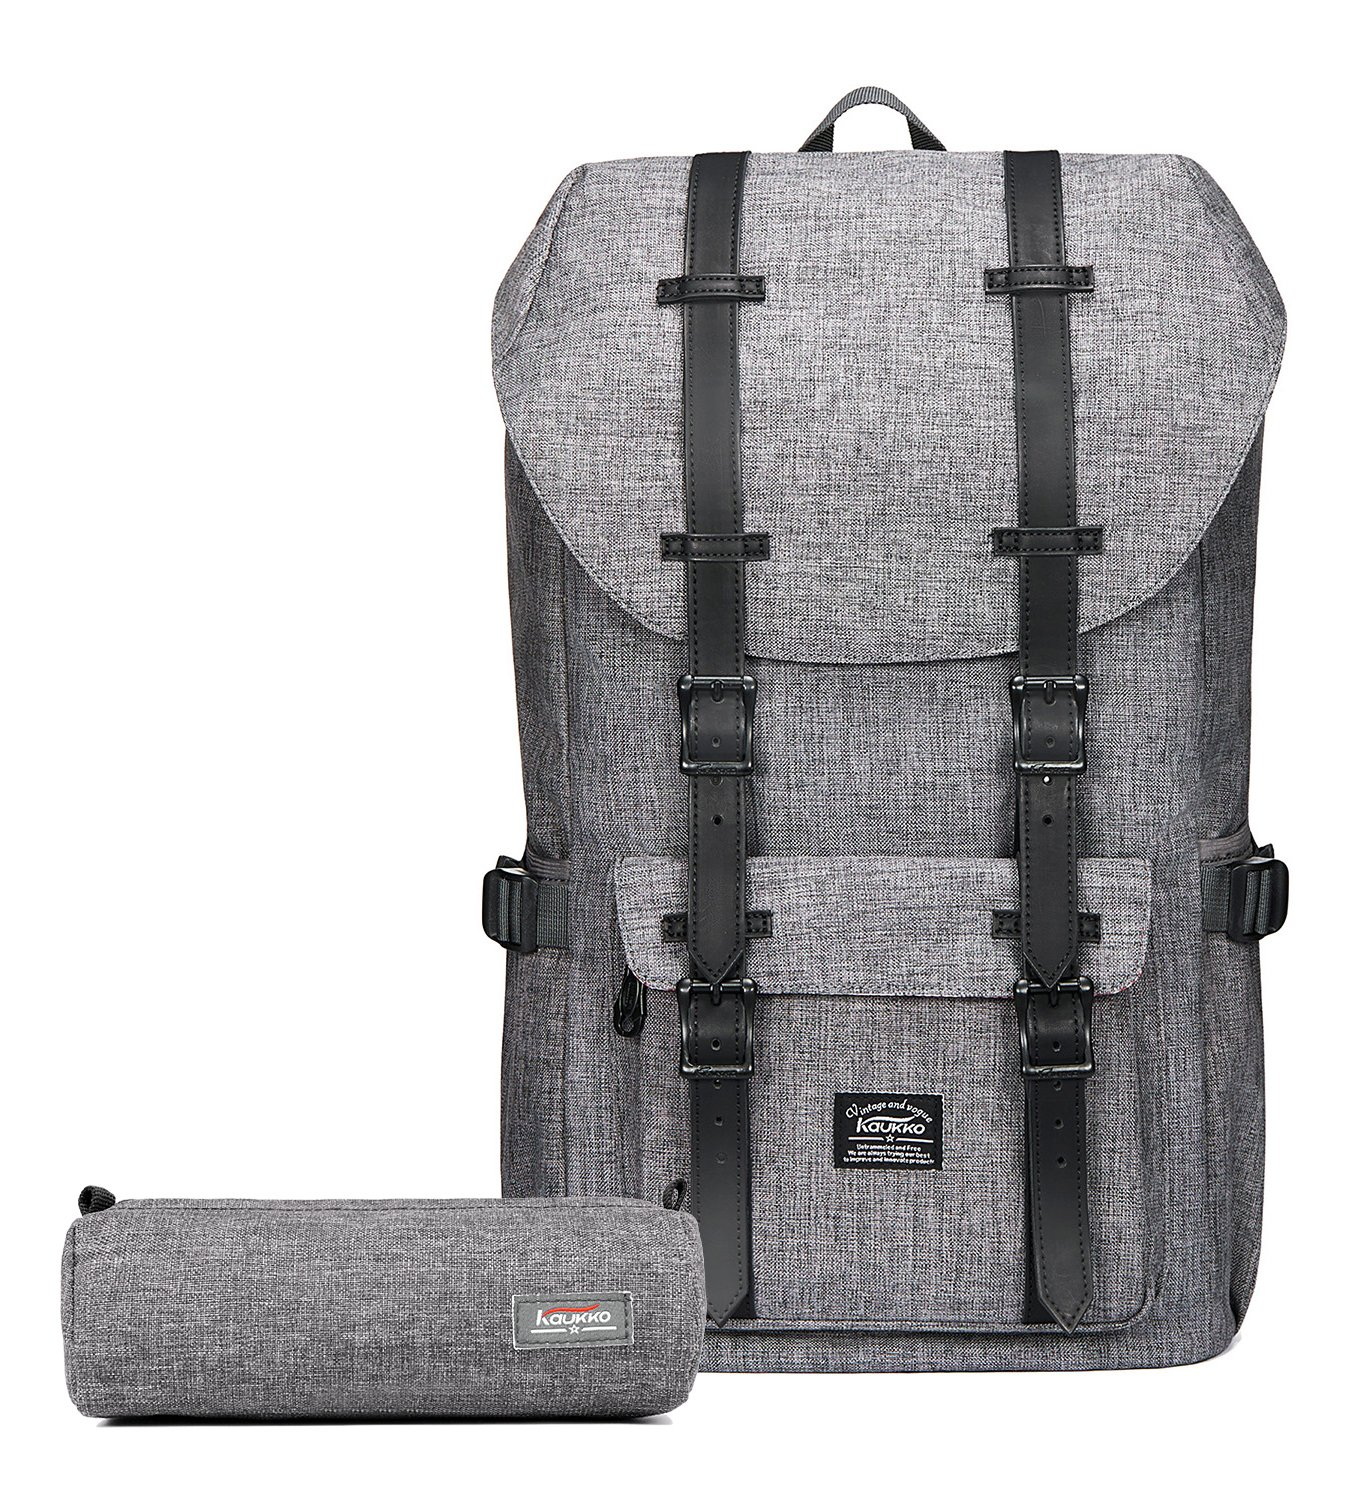 Kaukko Laptop Outdoor Backpack, Travel Hiking& Camping Rucksack Pack, Casual Large College School Daypack, Shoulder Book Bags Back Fits 15'' Laptop & Tablets (1Linen Grey(2pc))